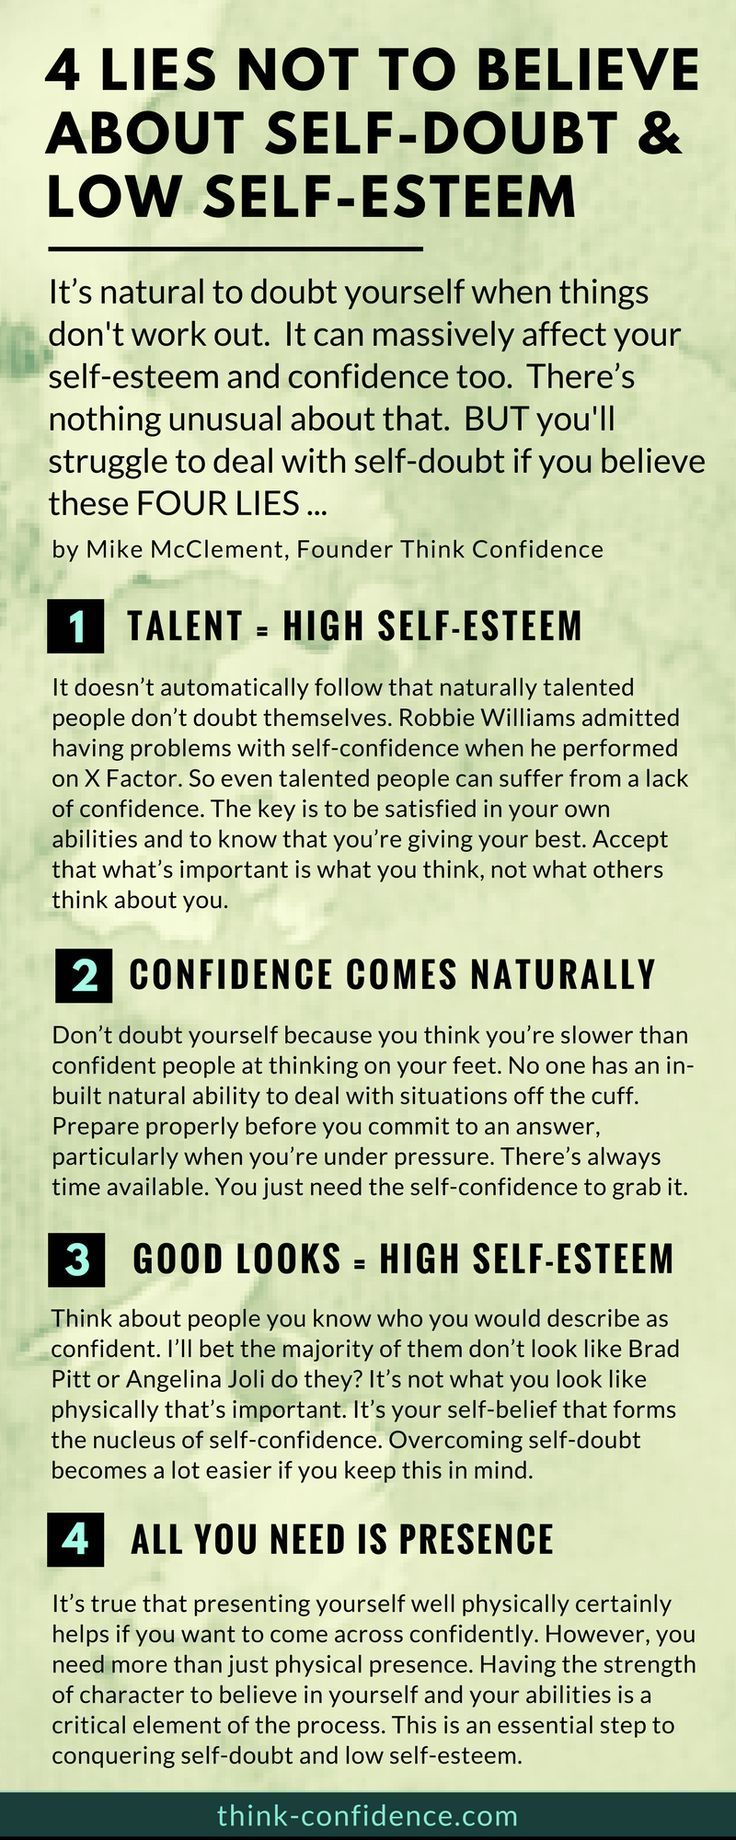 How to build self-esteem and overcome self-doubt. Lies not to believe and practical tips to try out. #selfesteem #confidence #infographic #steps #tips